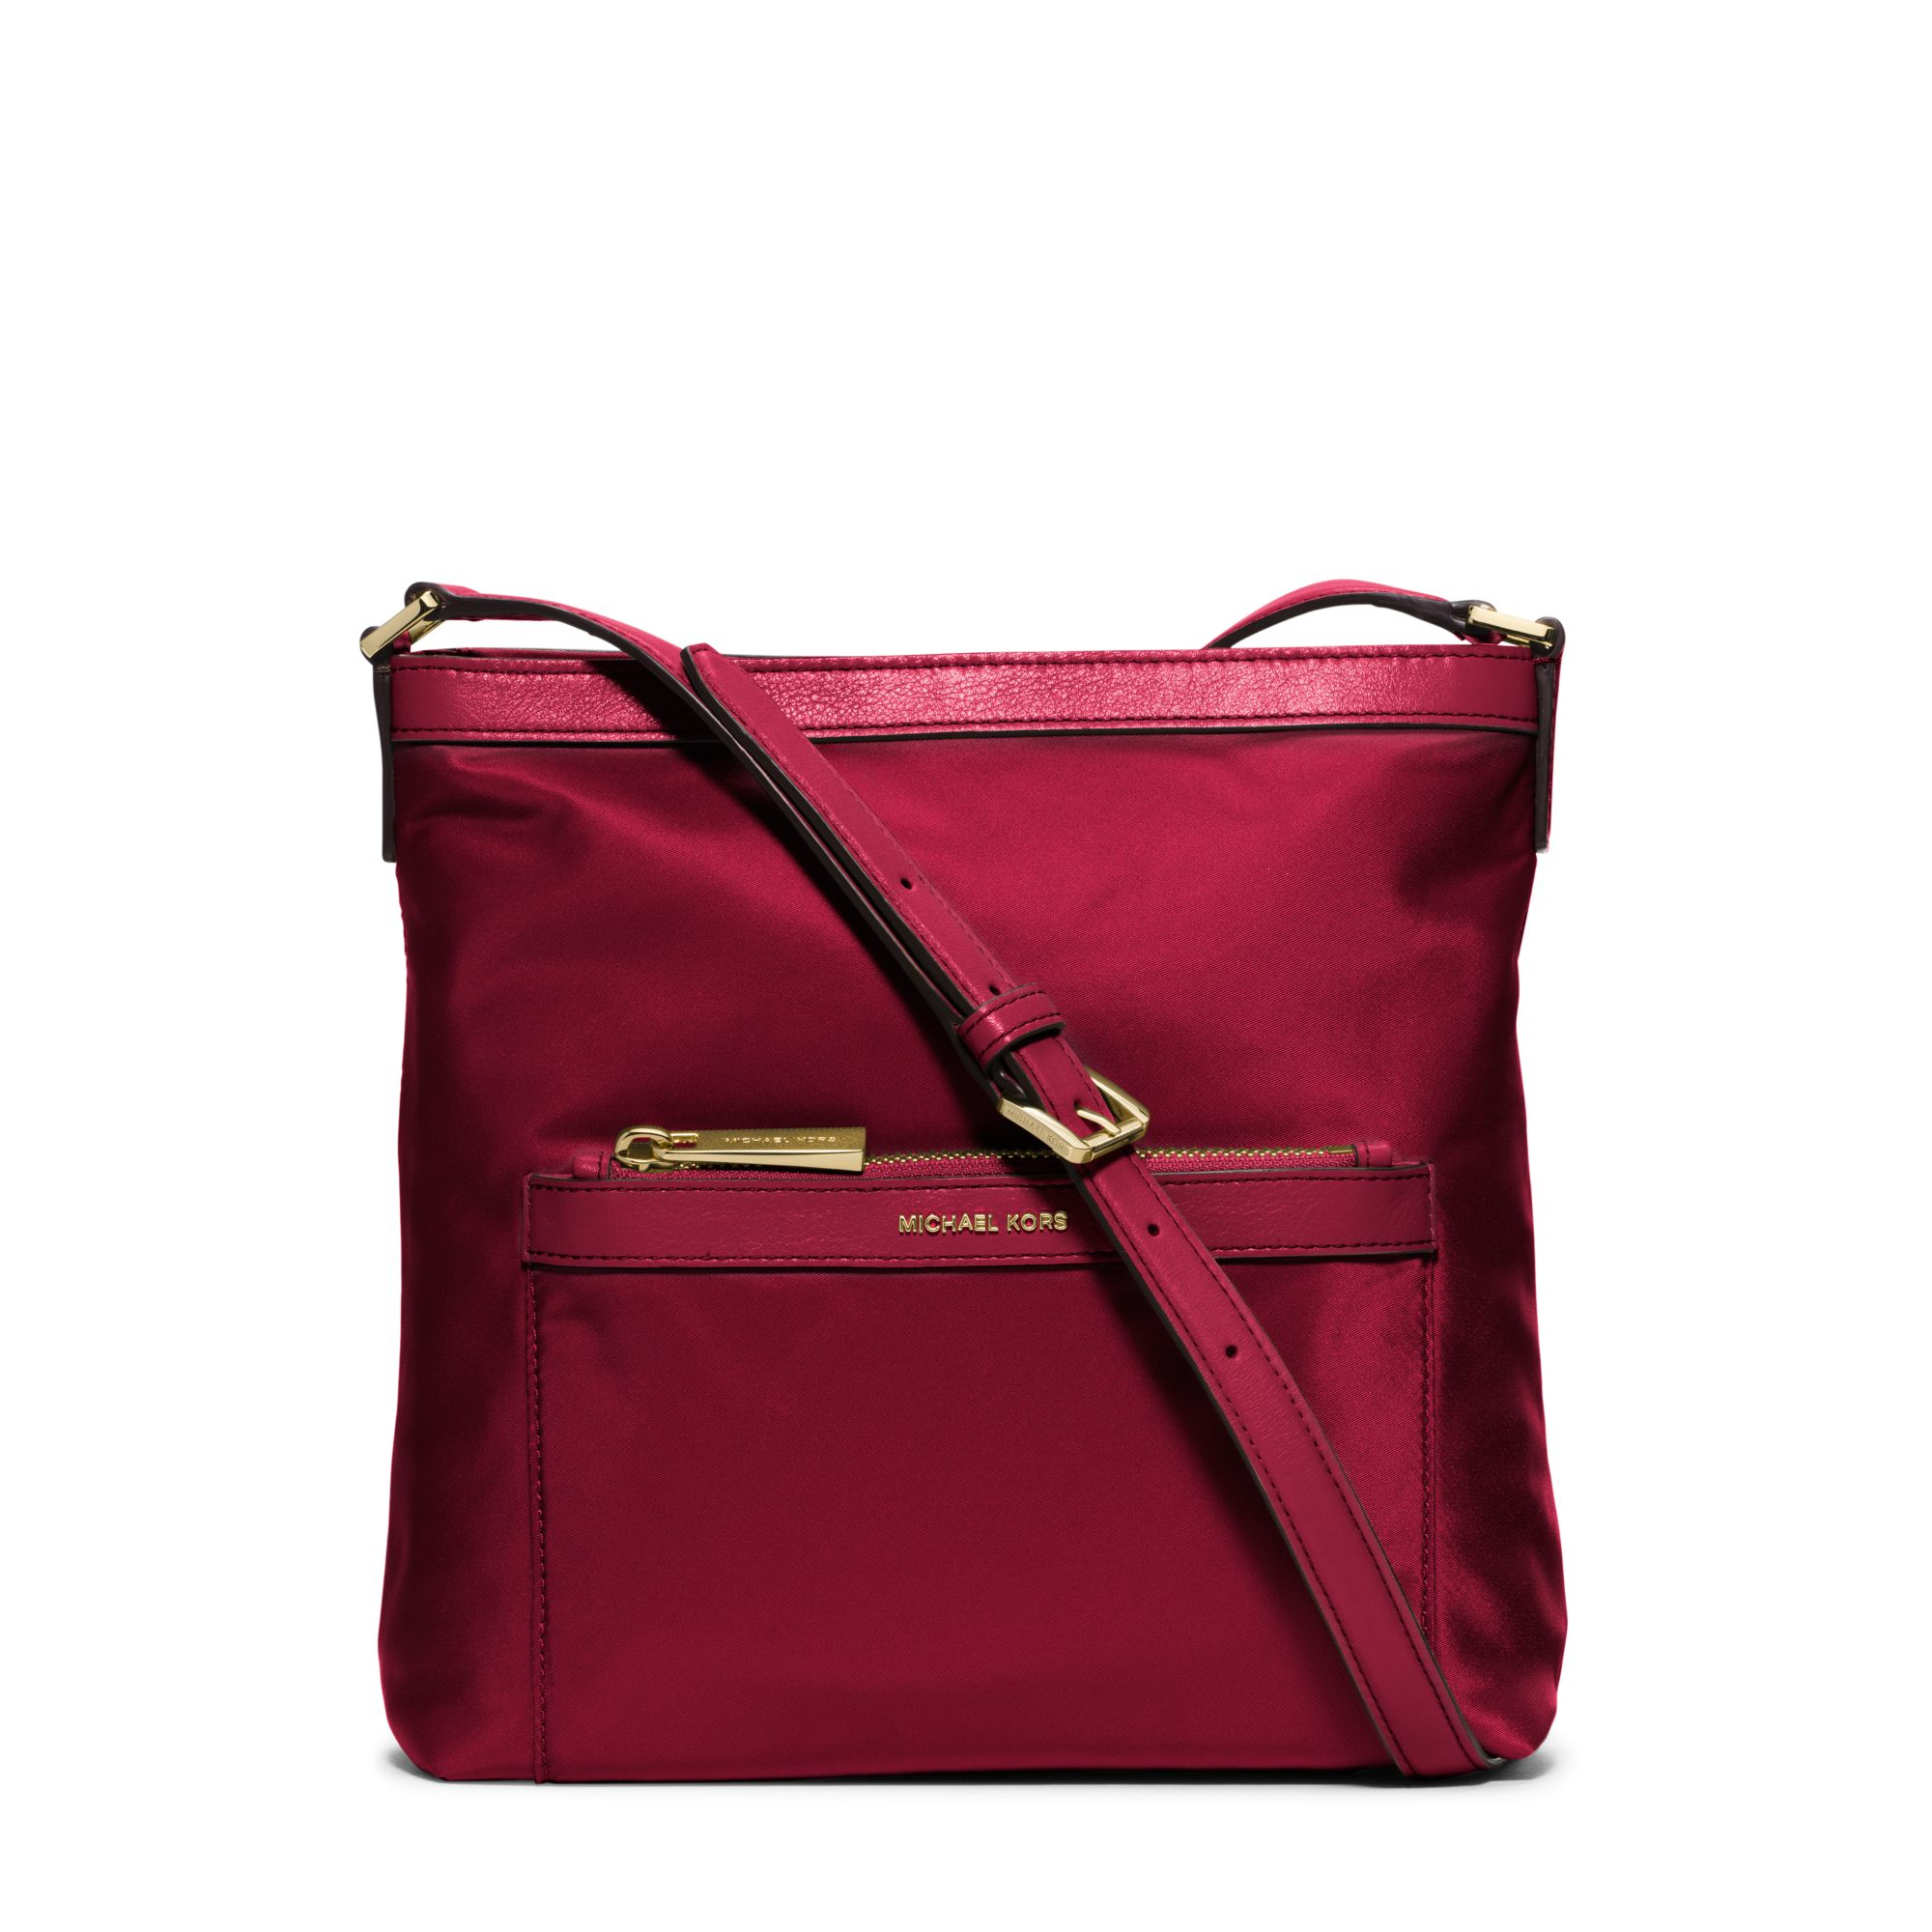 b80255a16b49 ... Bag - Cherry i Michael kors Morgan Medium Nylon Crossbody in Red Lyst